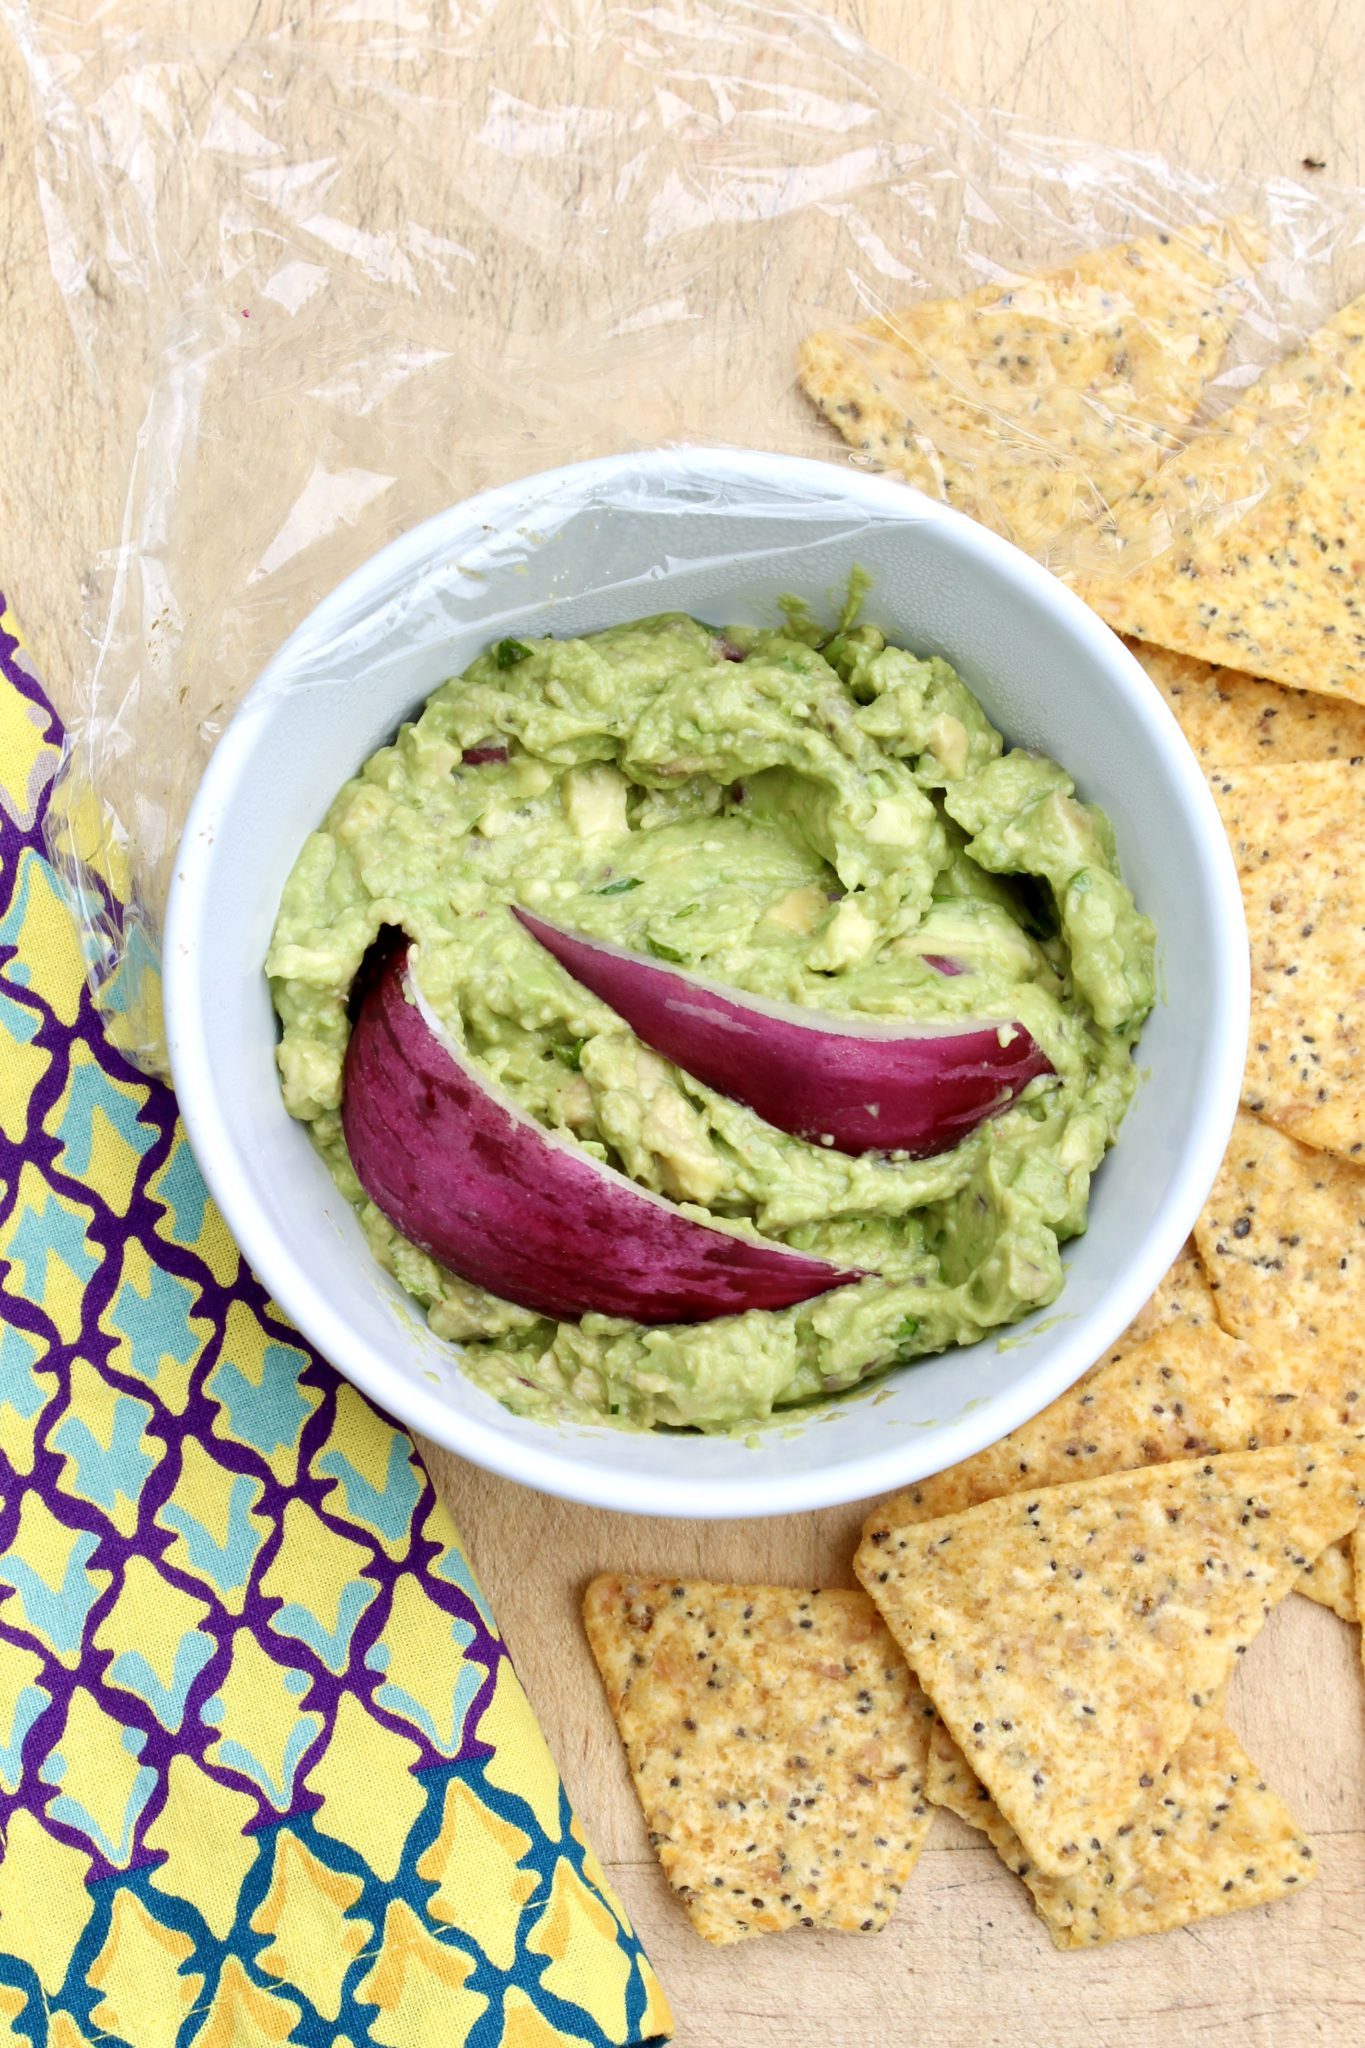 BEST TIP EVER to prevent browning of leftover guacamole or part of an avocado